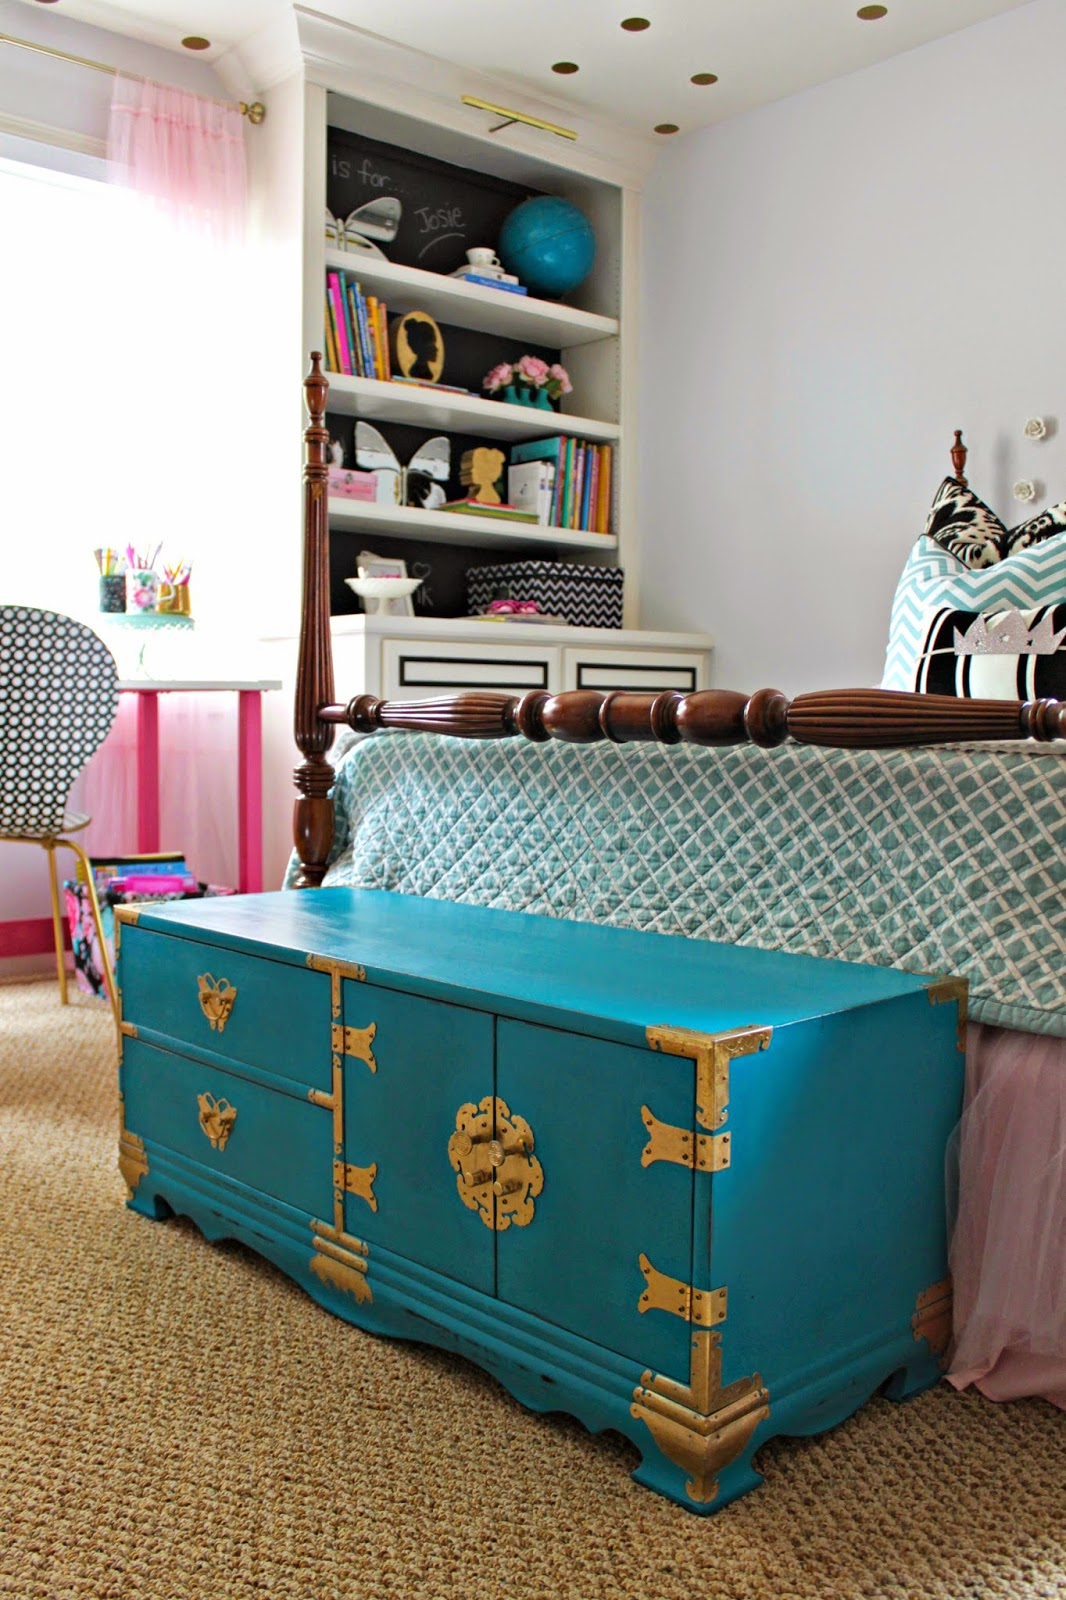 DIY oriental trunk repainting for a colorful touch